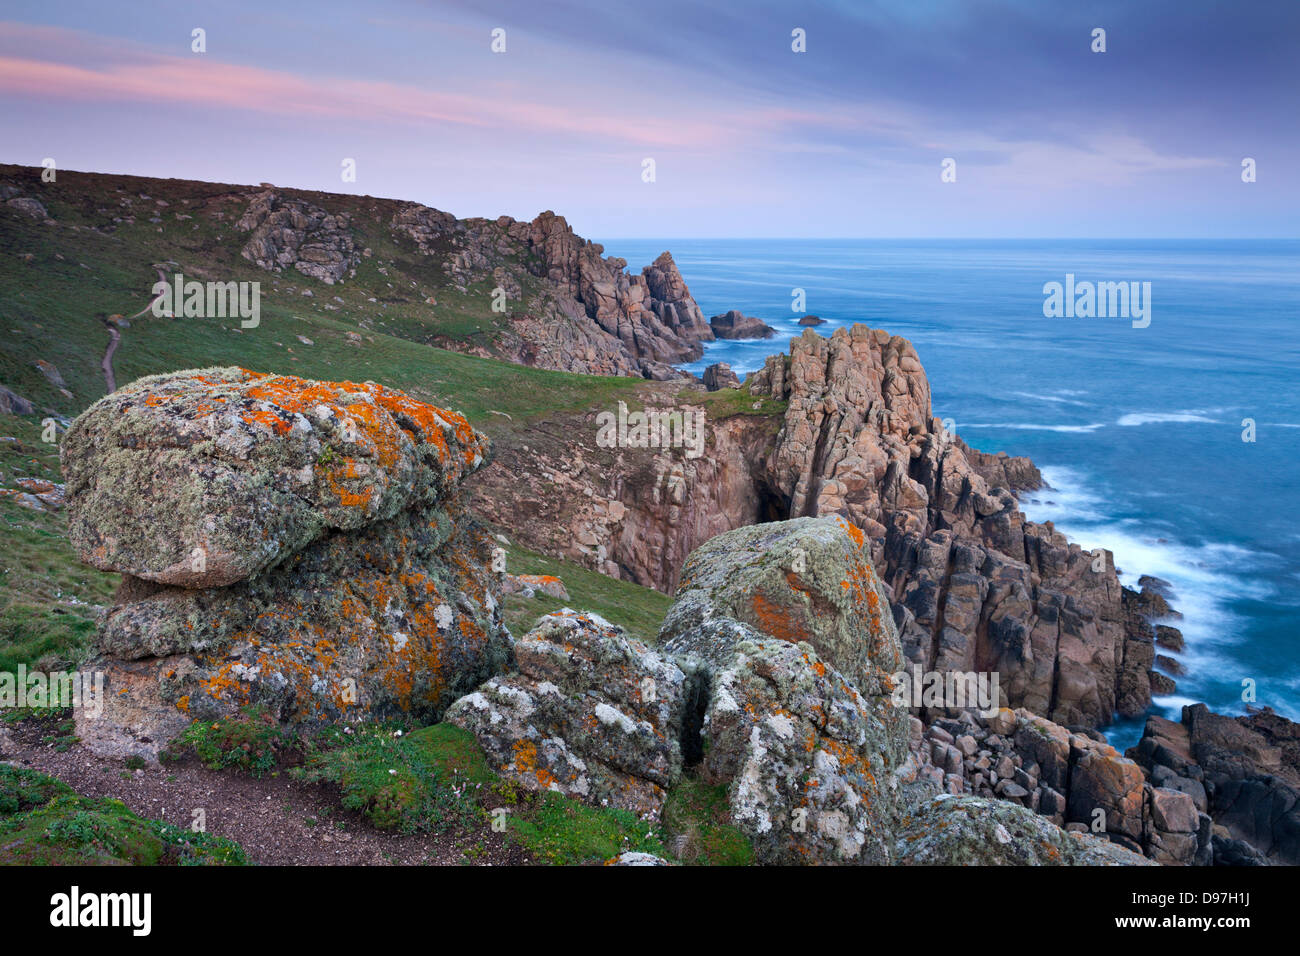 View from the coast path near Gwennap Head, Cornwall, England. Spring (May) 2012. - Stock Image